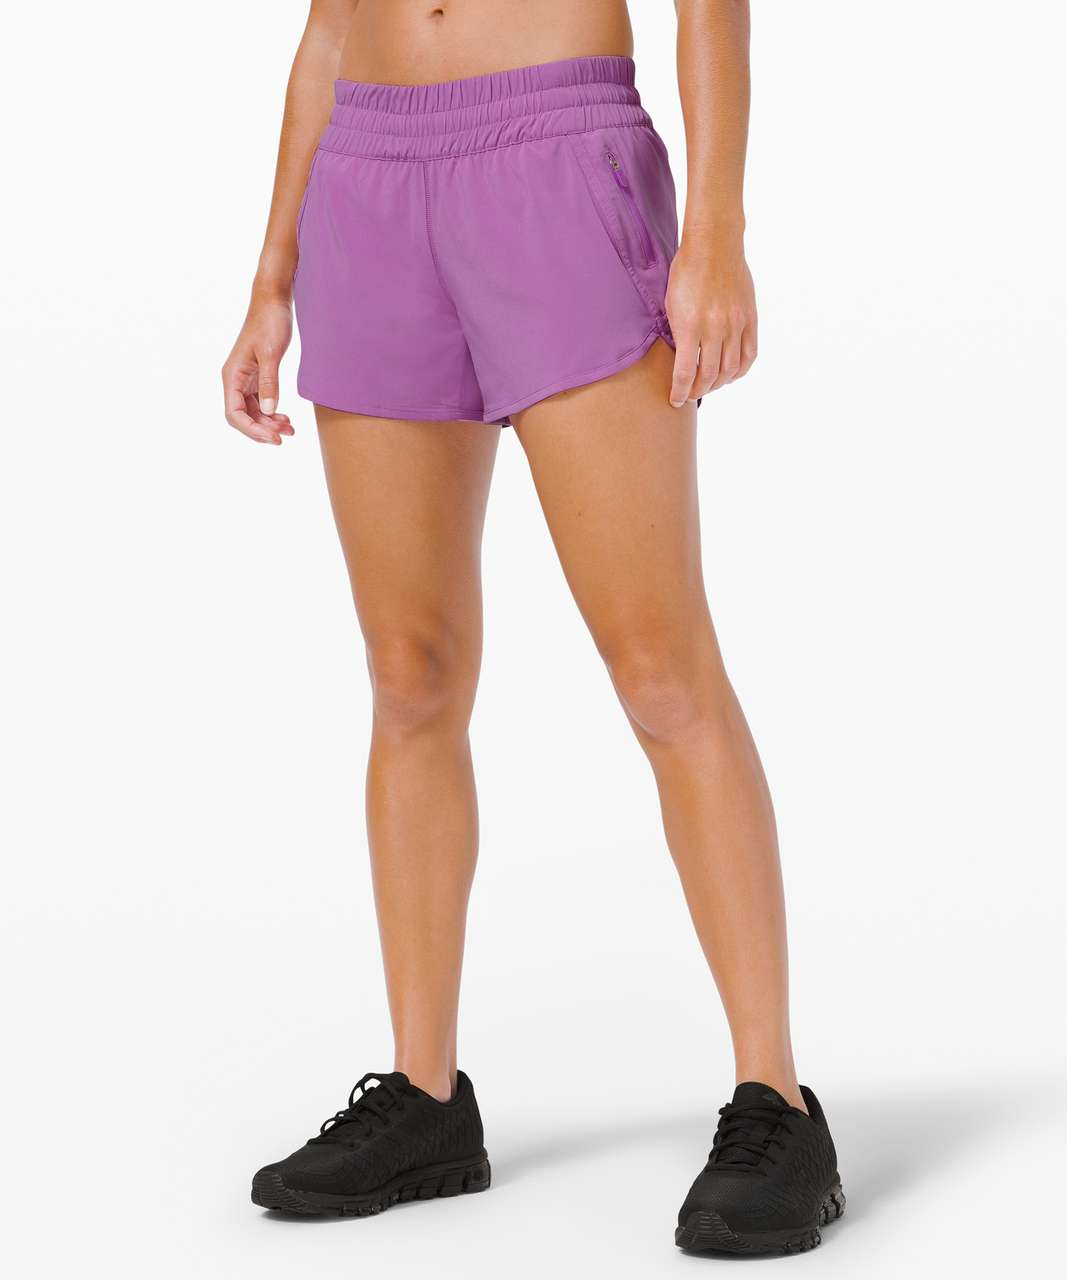 Lululemon Tracker Short V *SeaWheeze - Purple Blossom